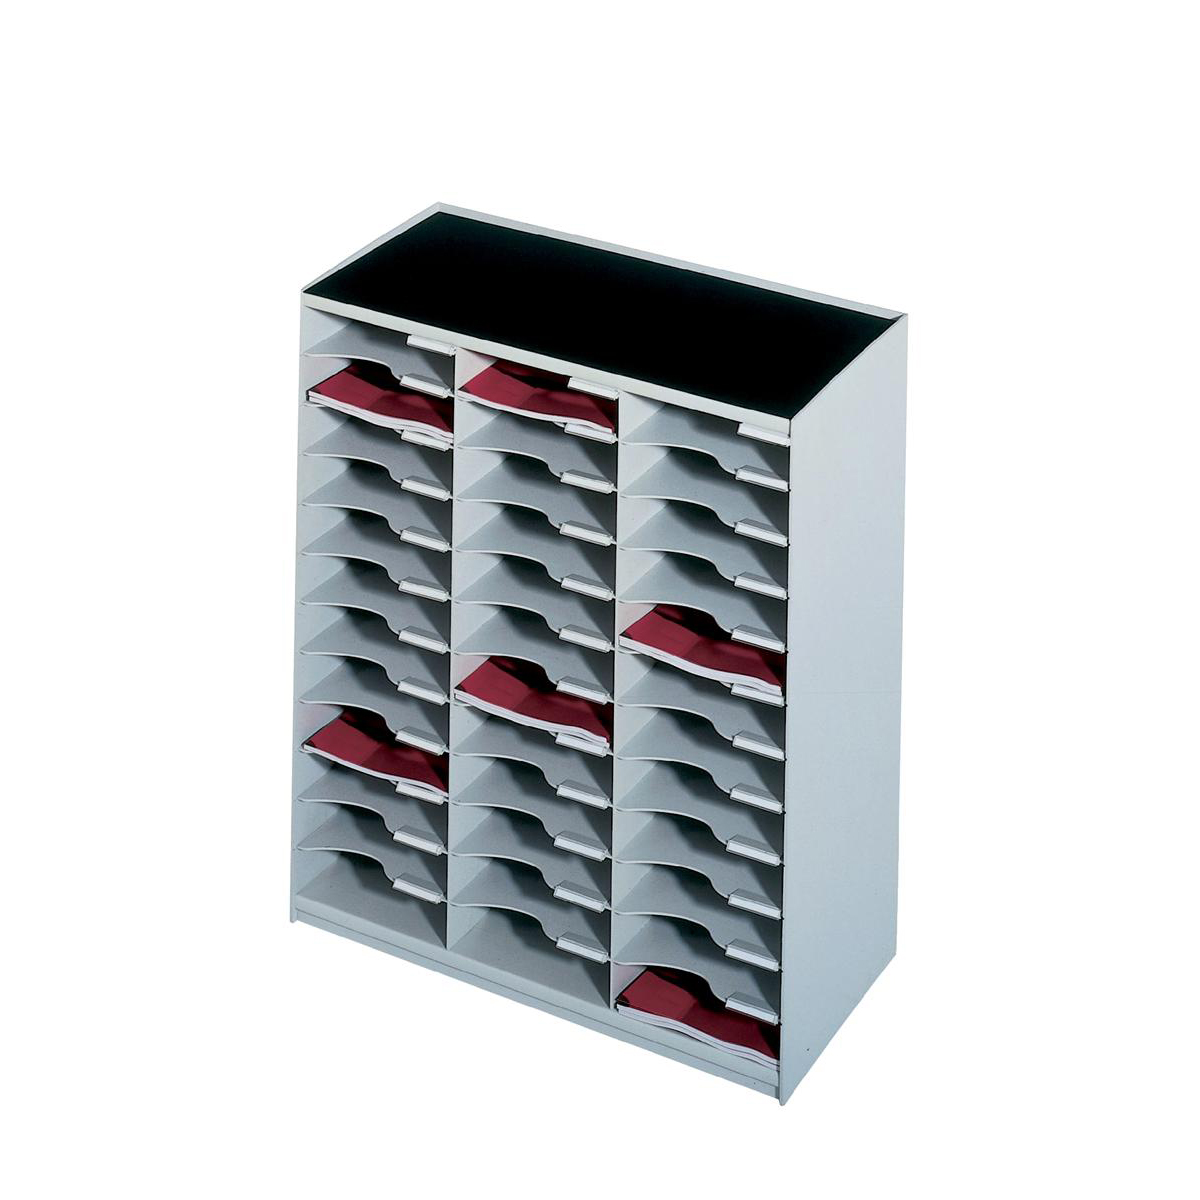 Paperflow Modulodoc Mailsorter Plastic Stackable 36x A4 Compartments W674xD308xH791mm Grey Ref 80302